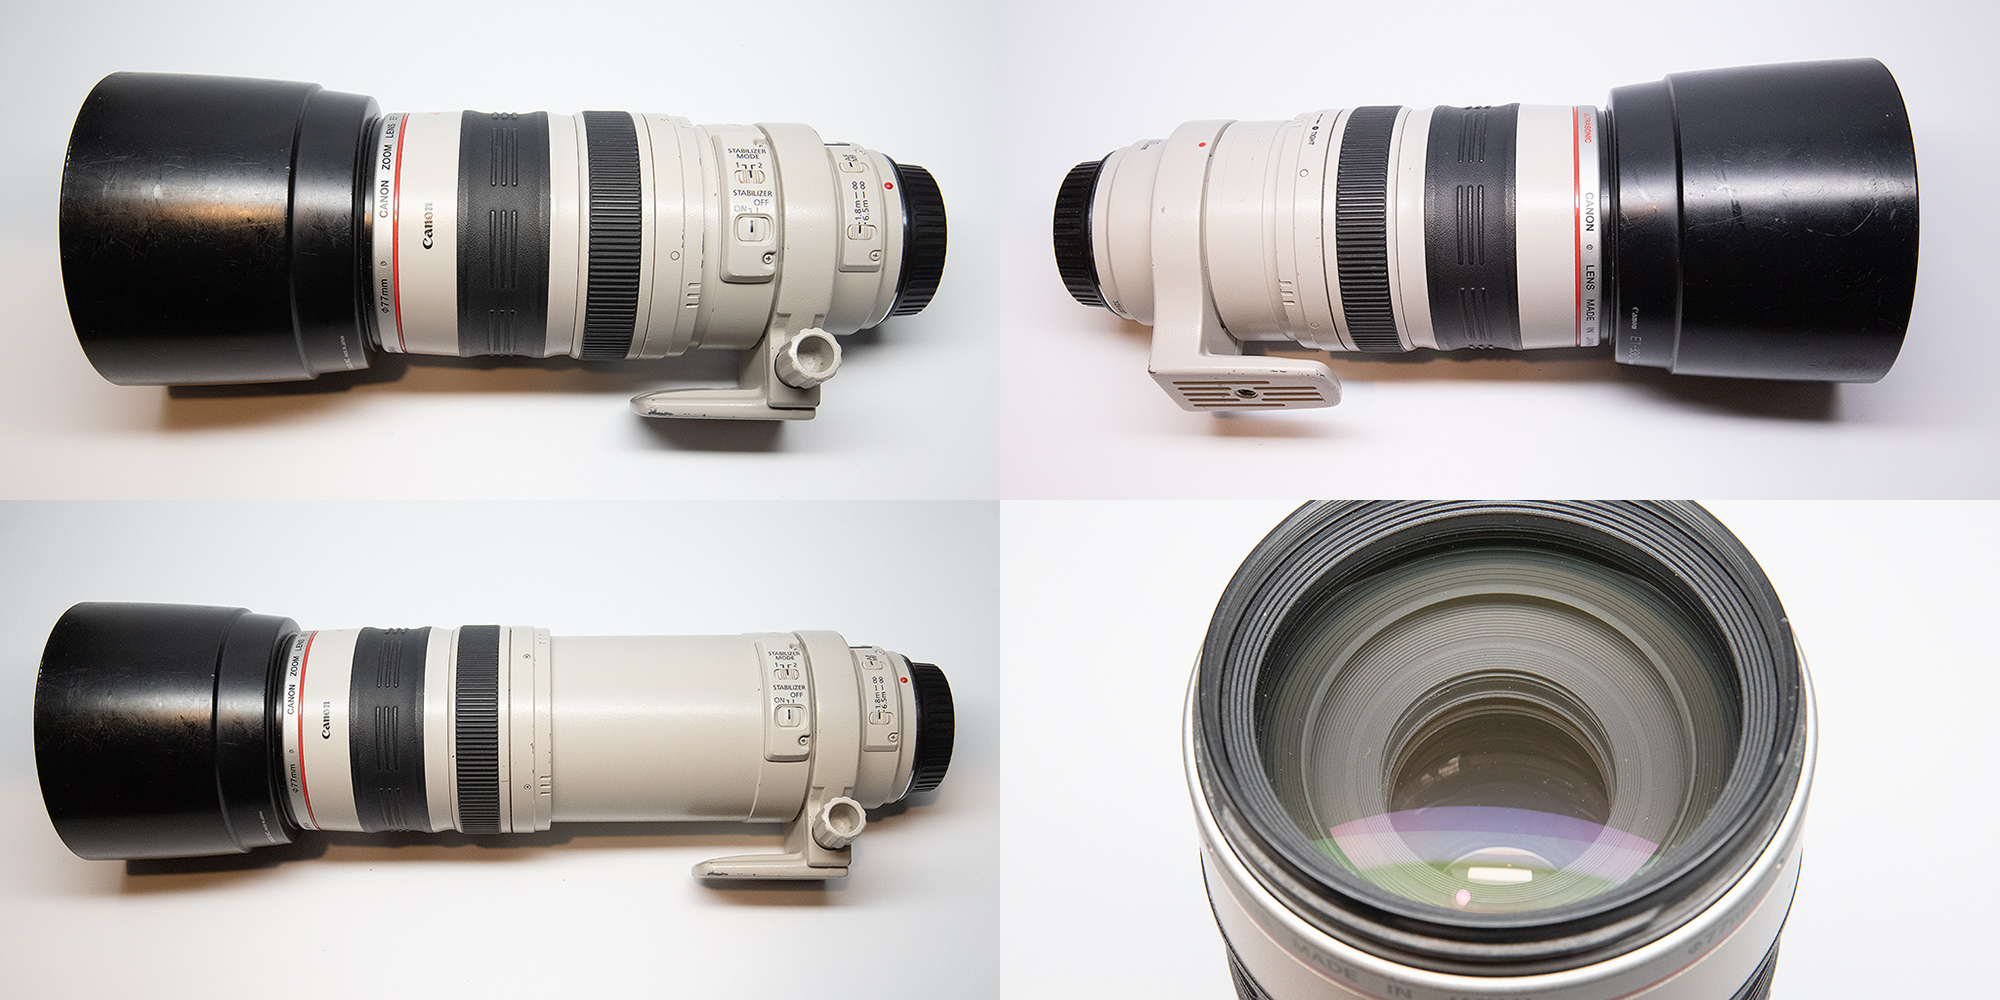 Canon 100-400mm Lens for sale